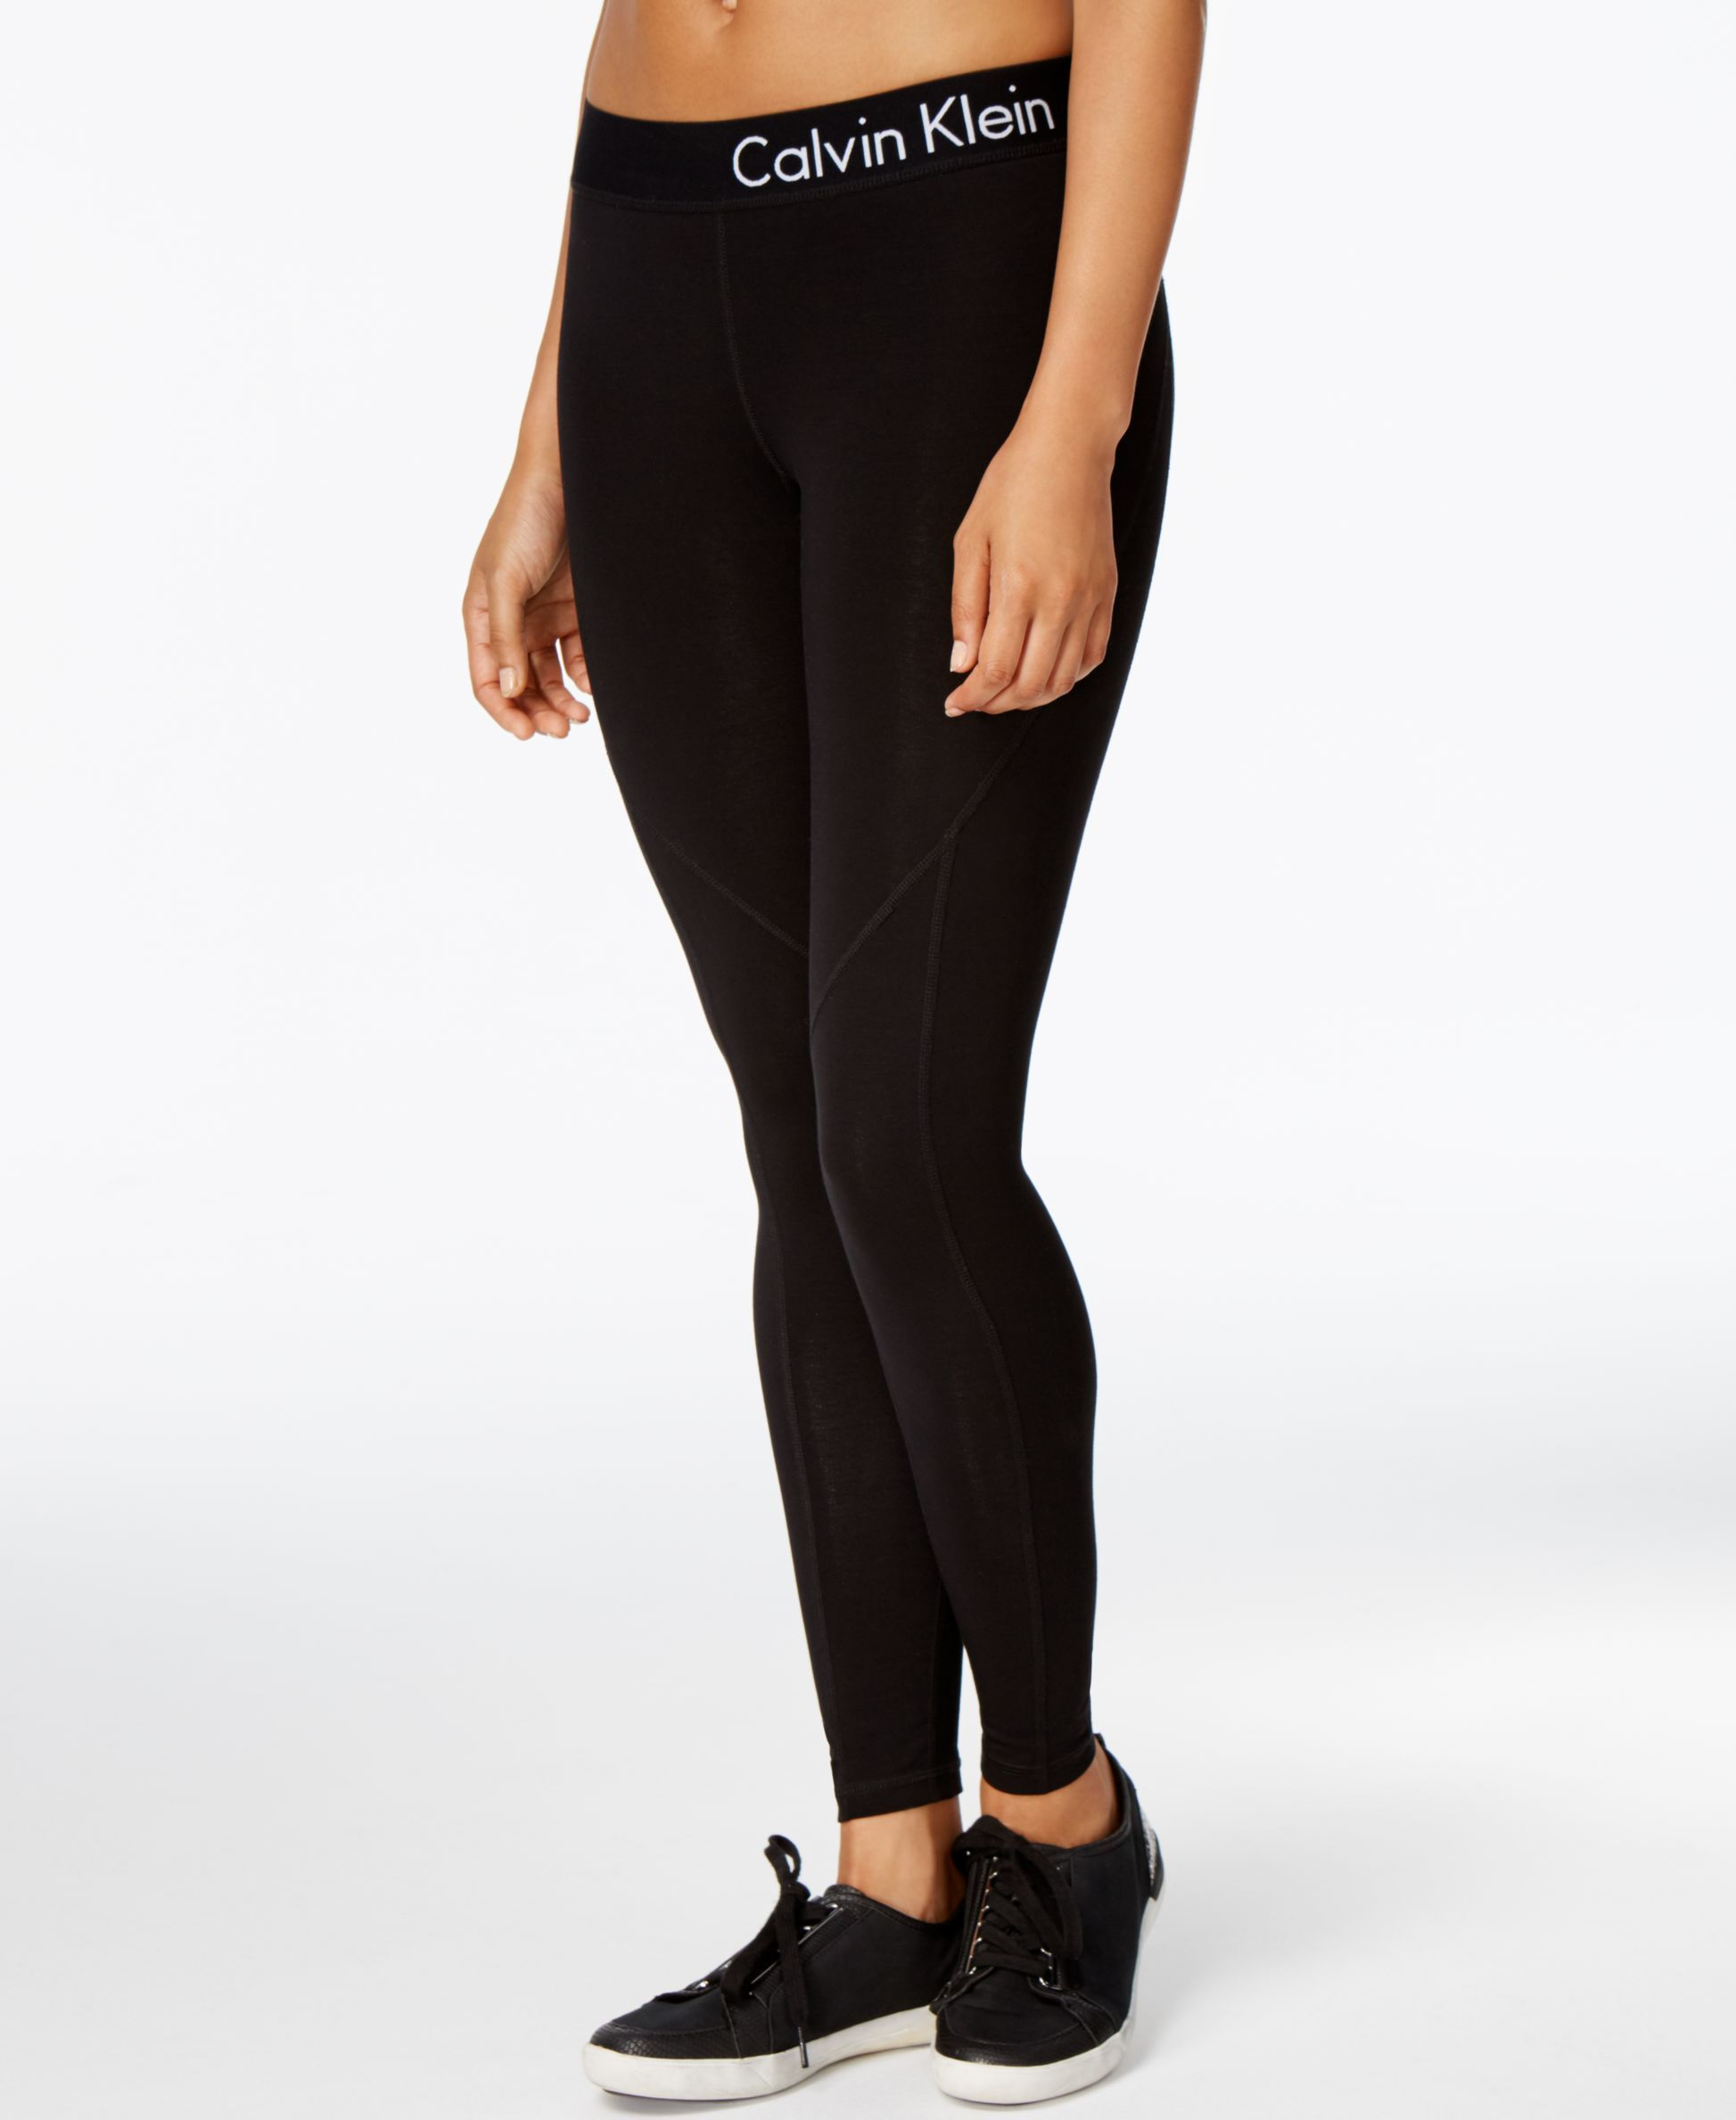 6d7344a969 Creating a great look begins with these Calvin Klein Performance leggings,  featuring sleek style that pairs easily with all your favorite printed tops.